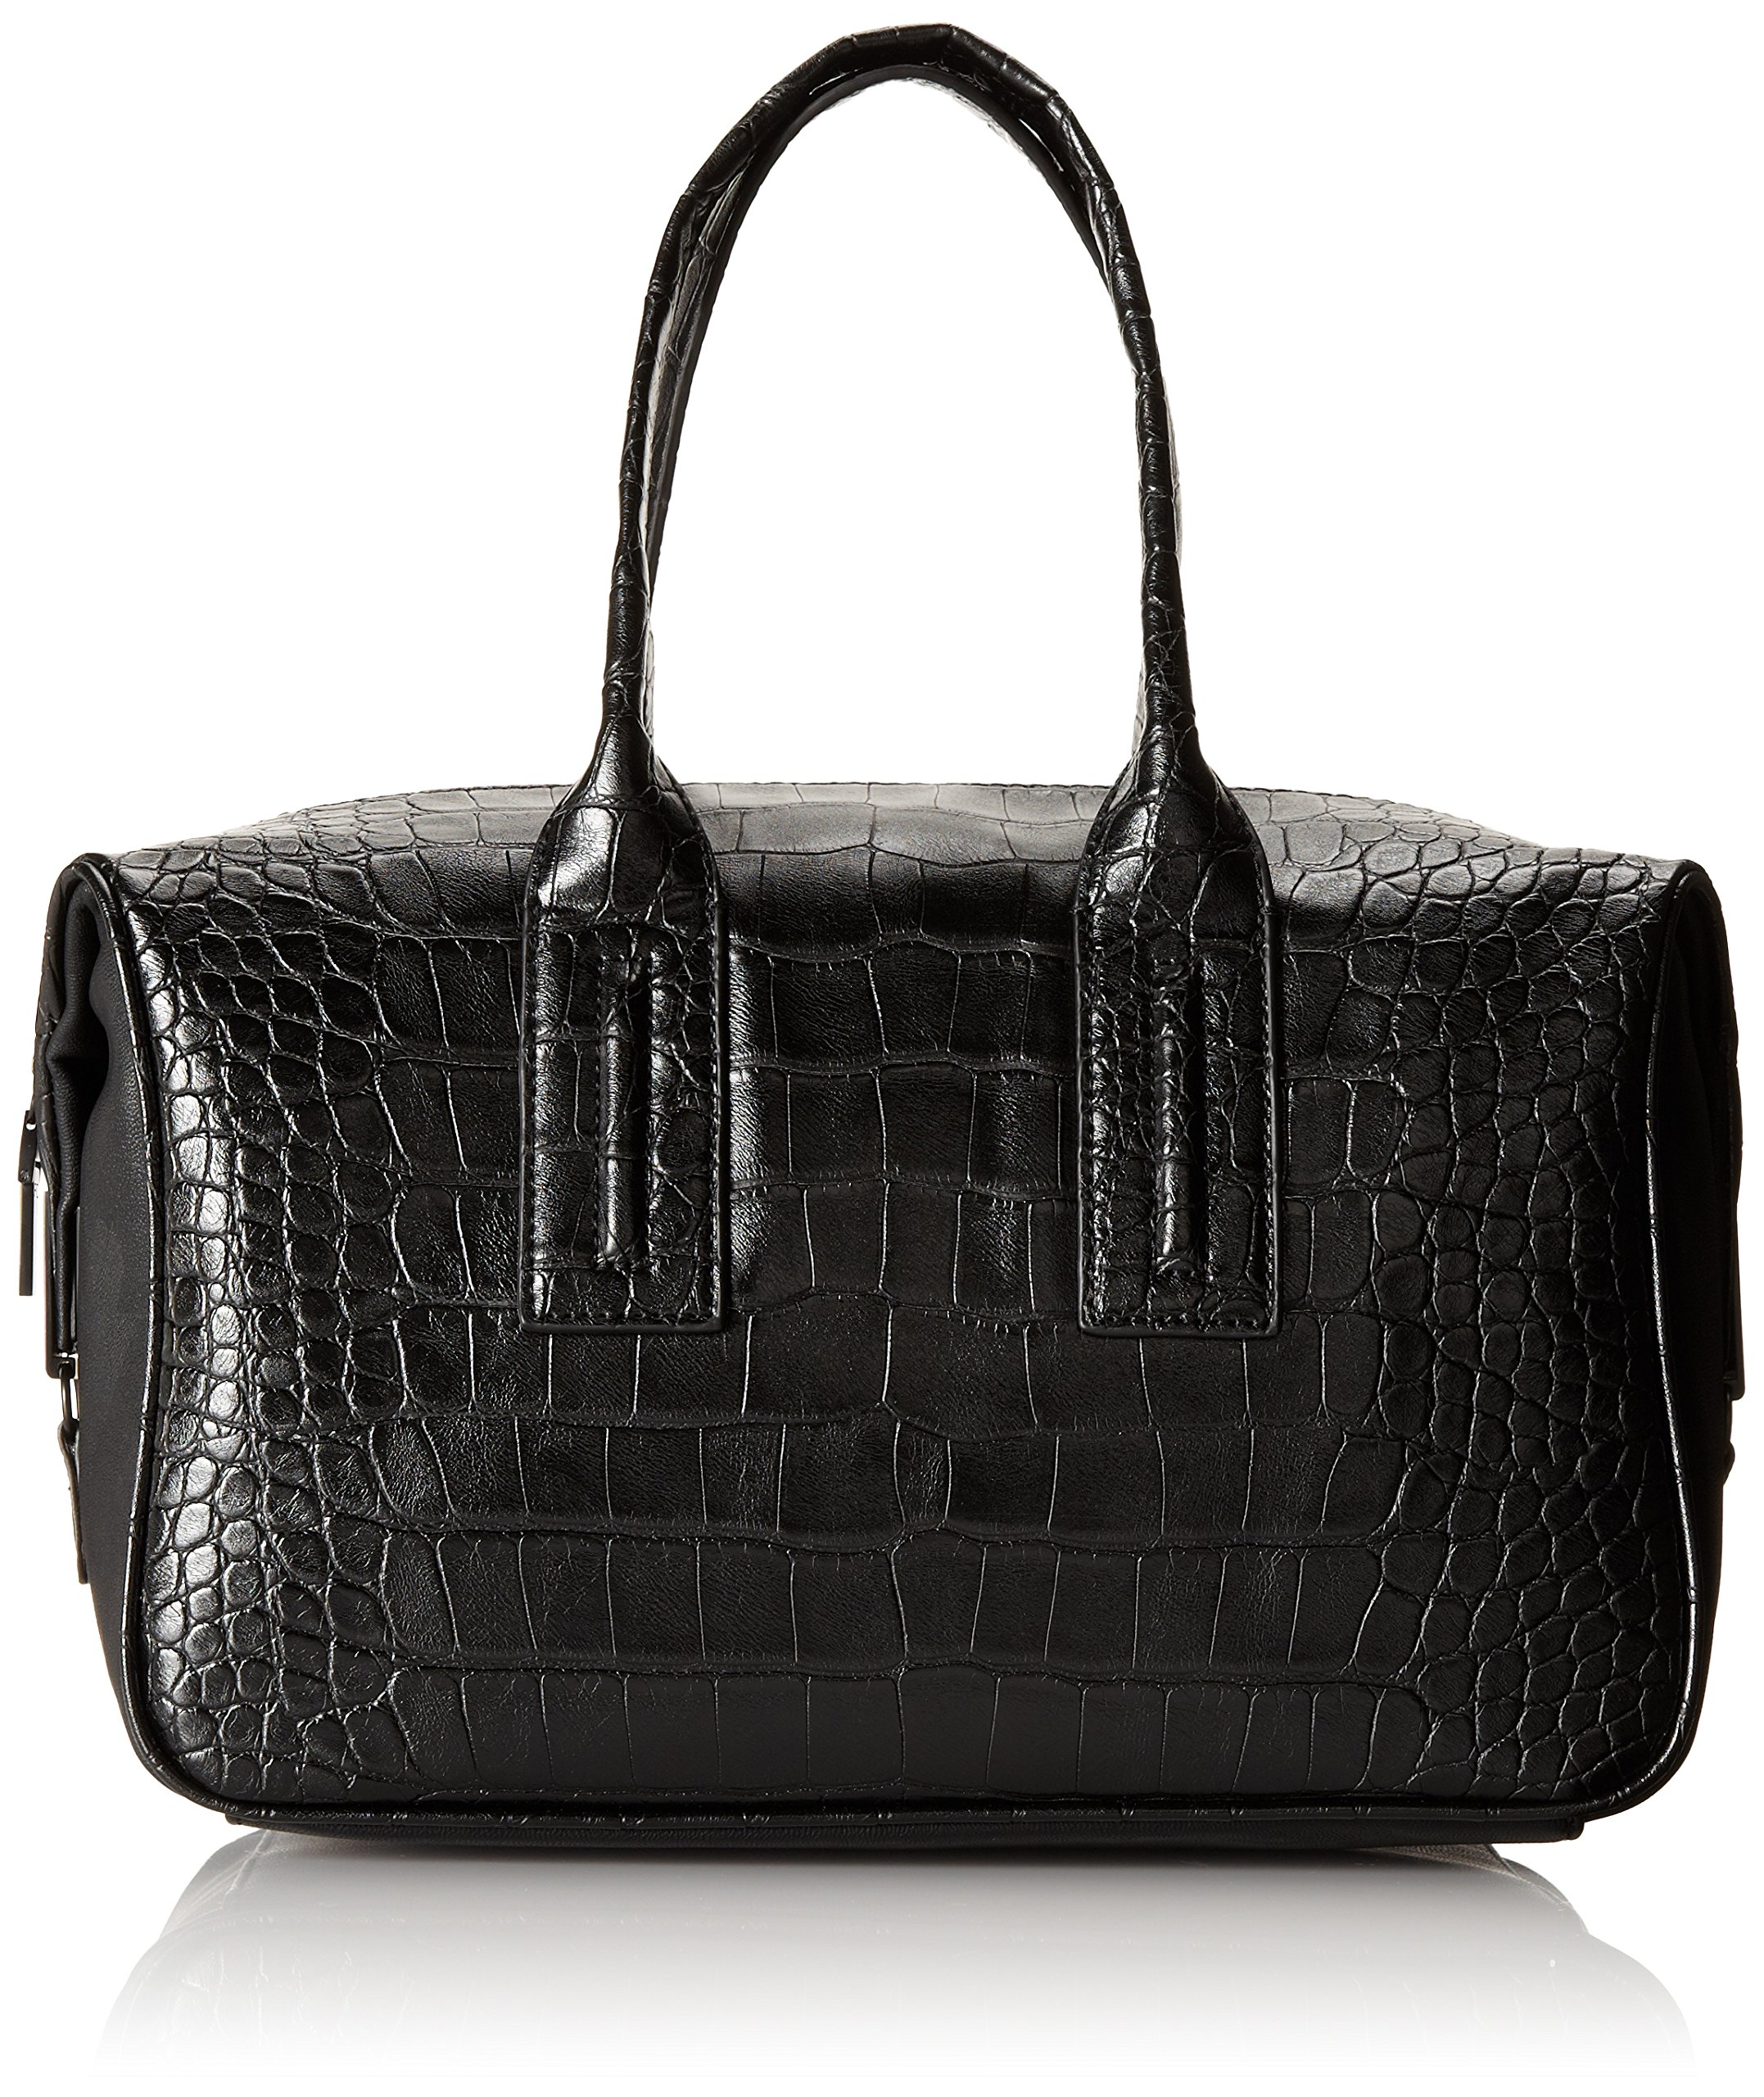 French Connection Shes A Lady Satchel,Black Crocodile,One Size by French Connection (Image #1)